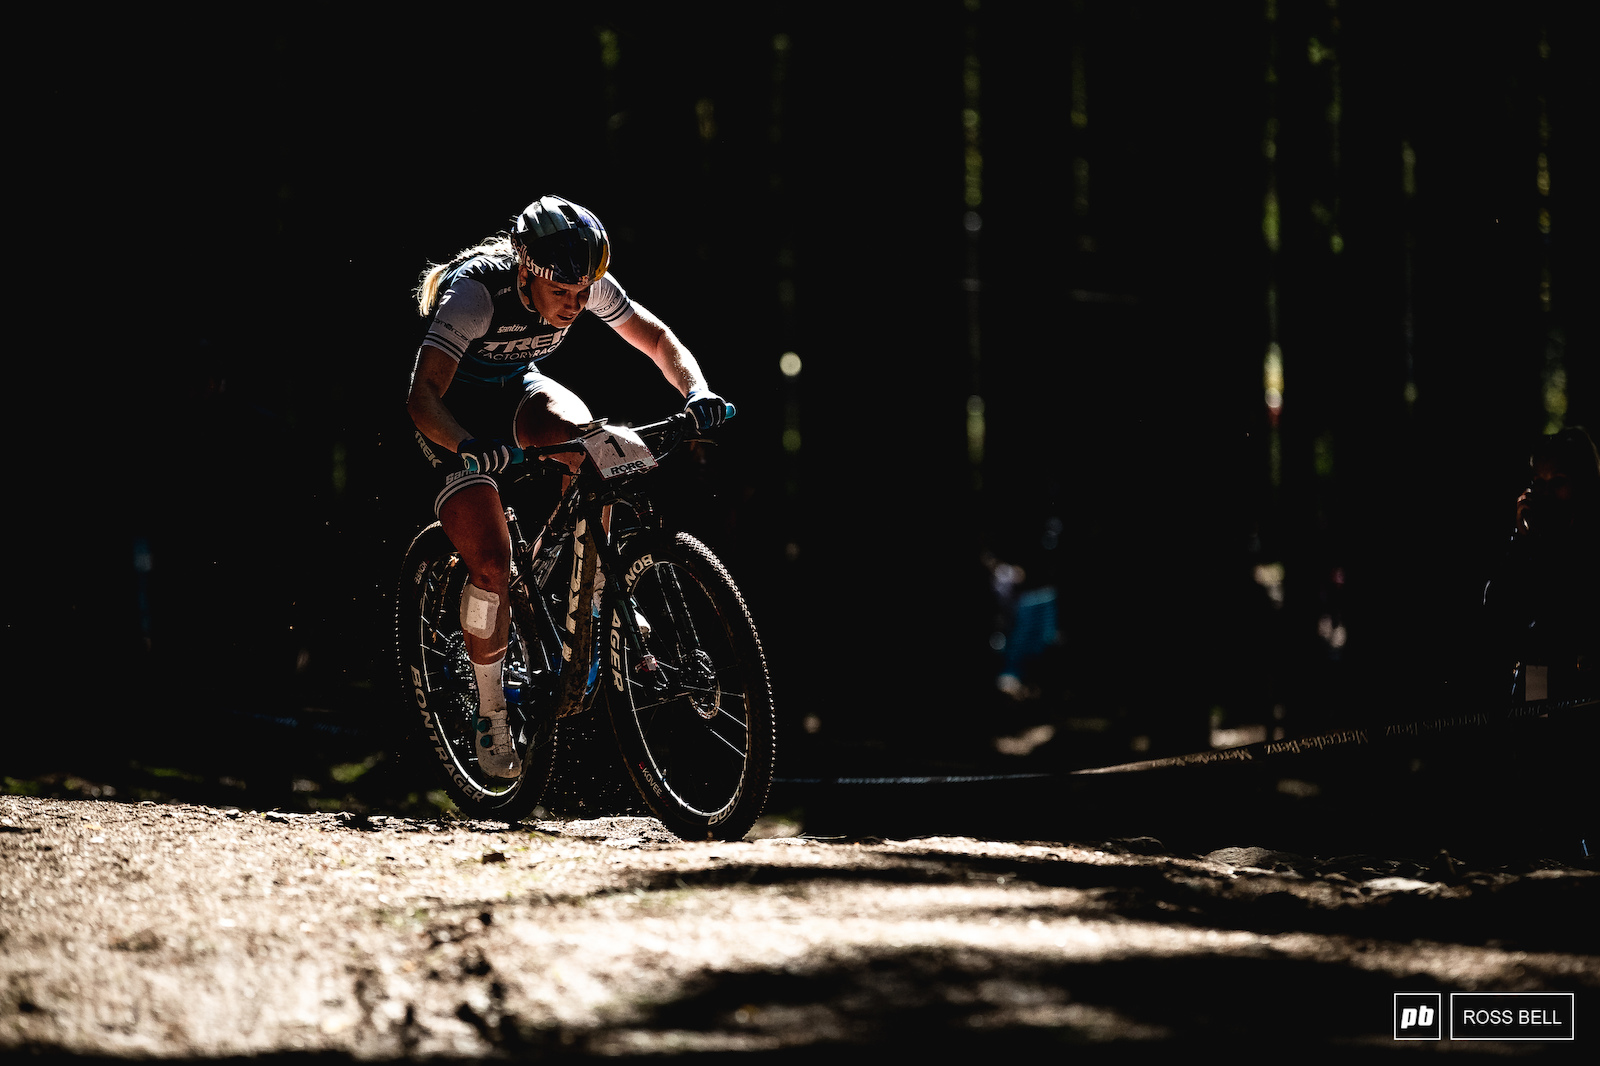 Evie Richards emerges from the darkness. Check out what s keeping her company in her rear-wheel...